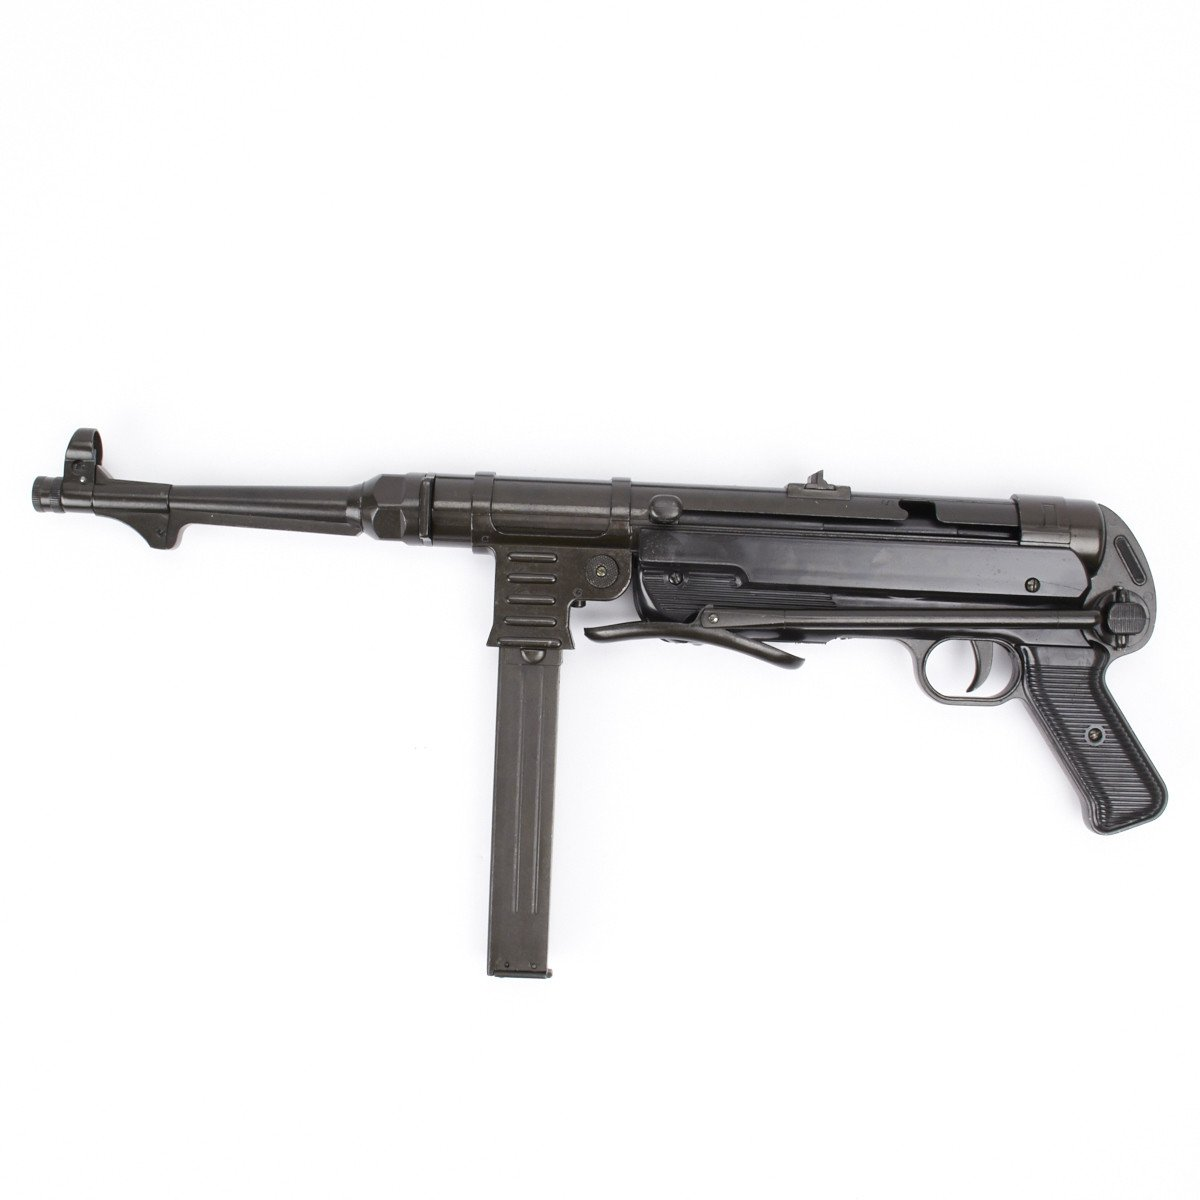 Military Guns For Sale >> Replica Non Firing Guns International Military Antiques